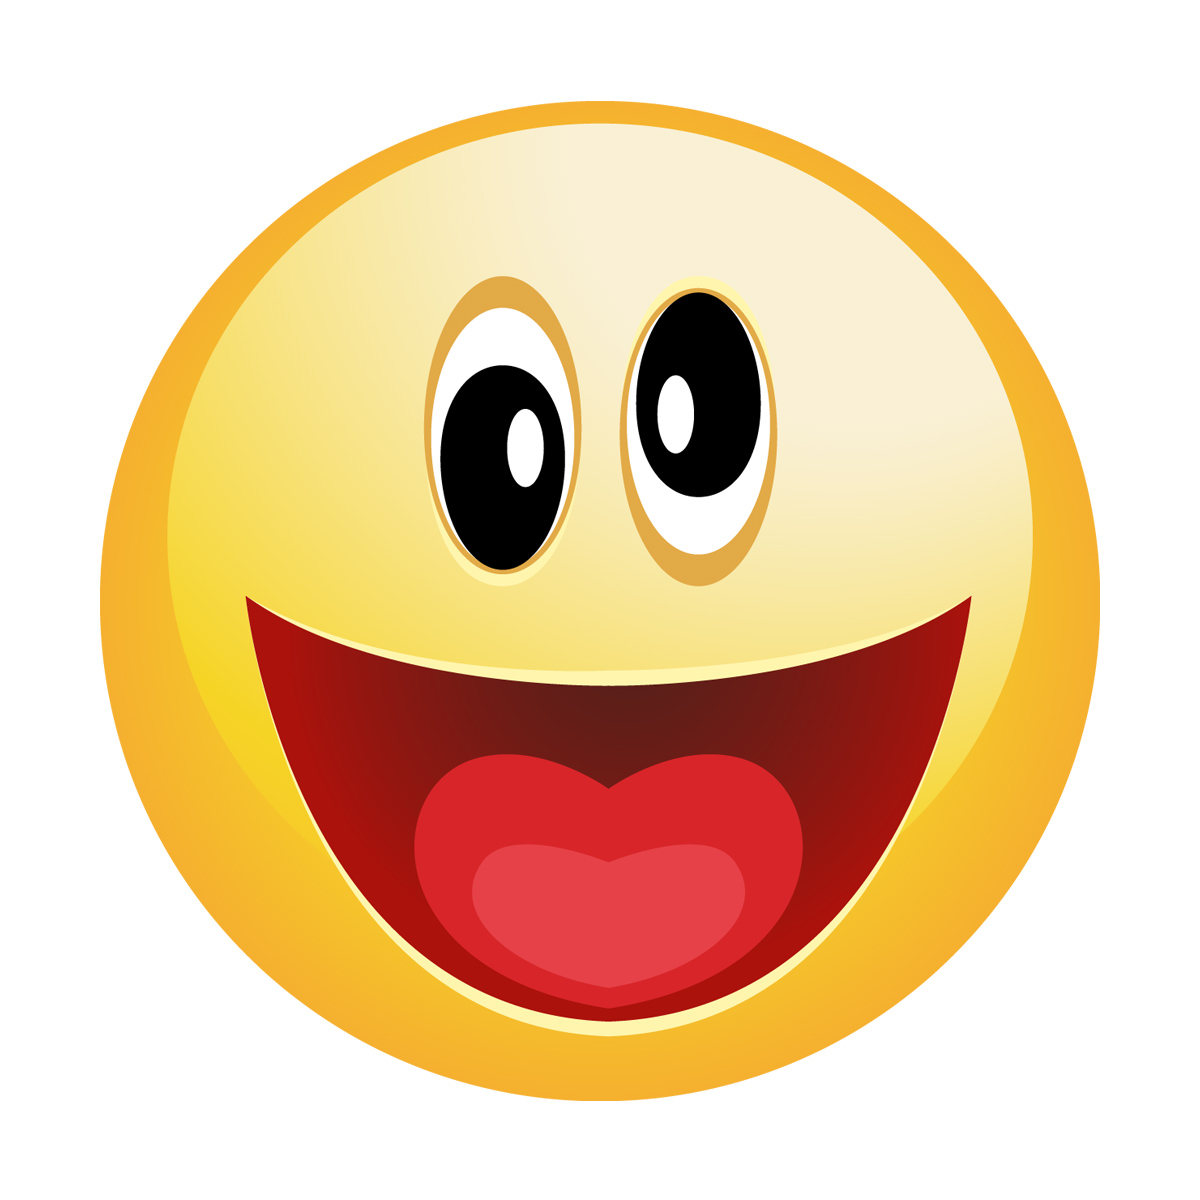 Crazy Smile Pic Clipart Best